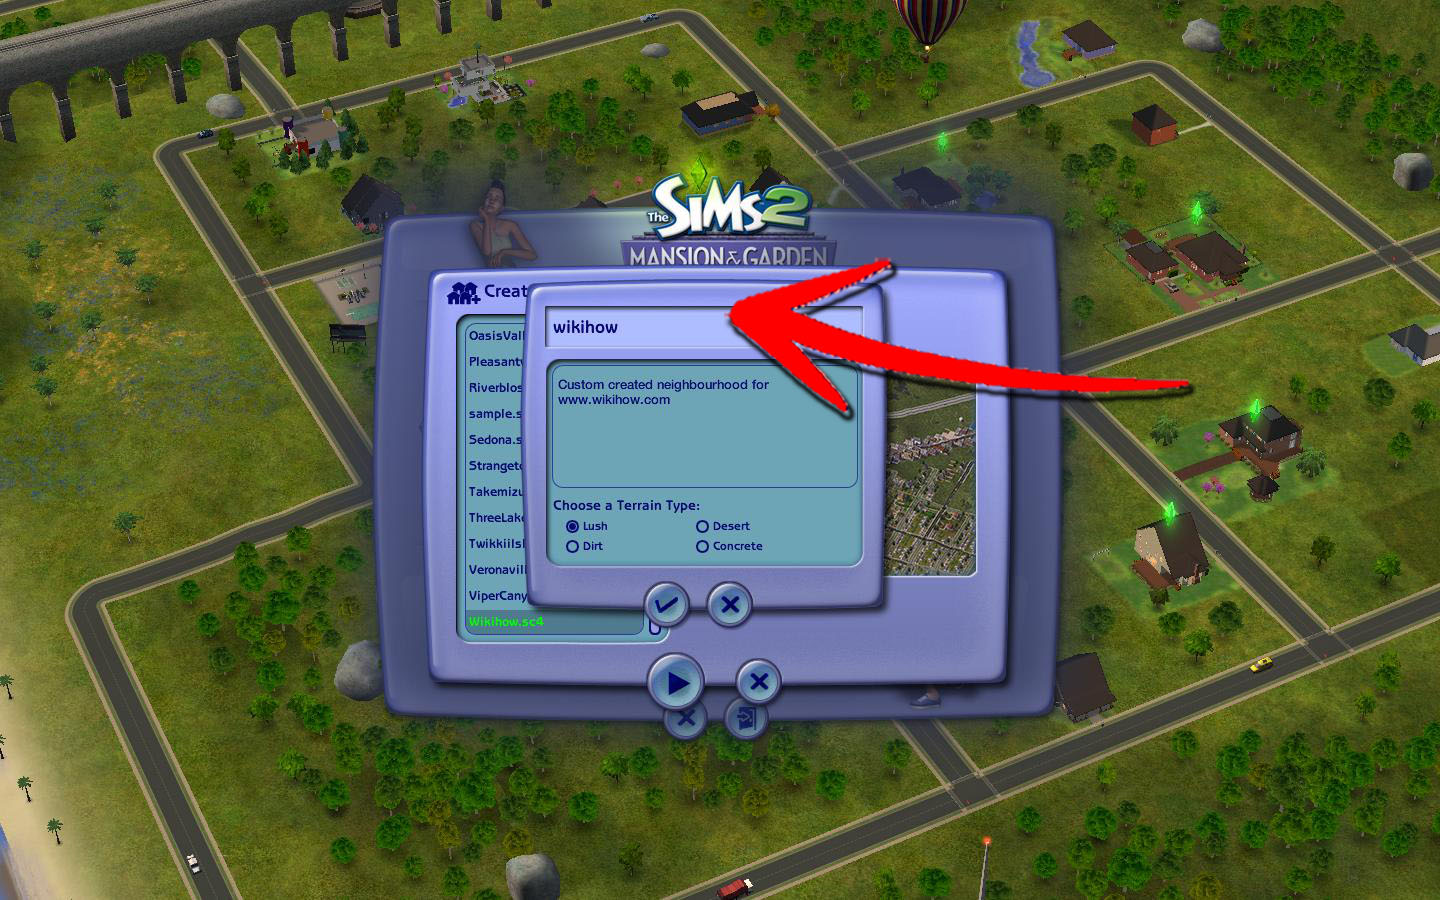 How To Create A Neighborhood In The Sims 2 10 Steps